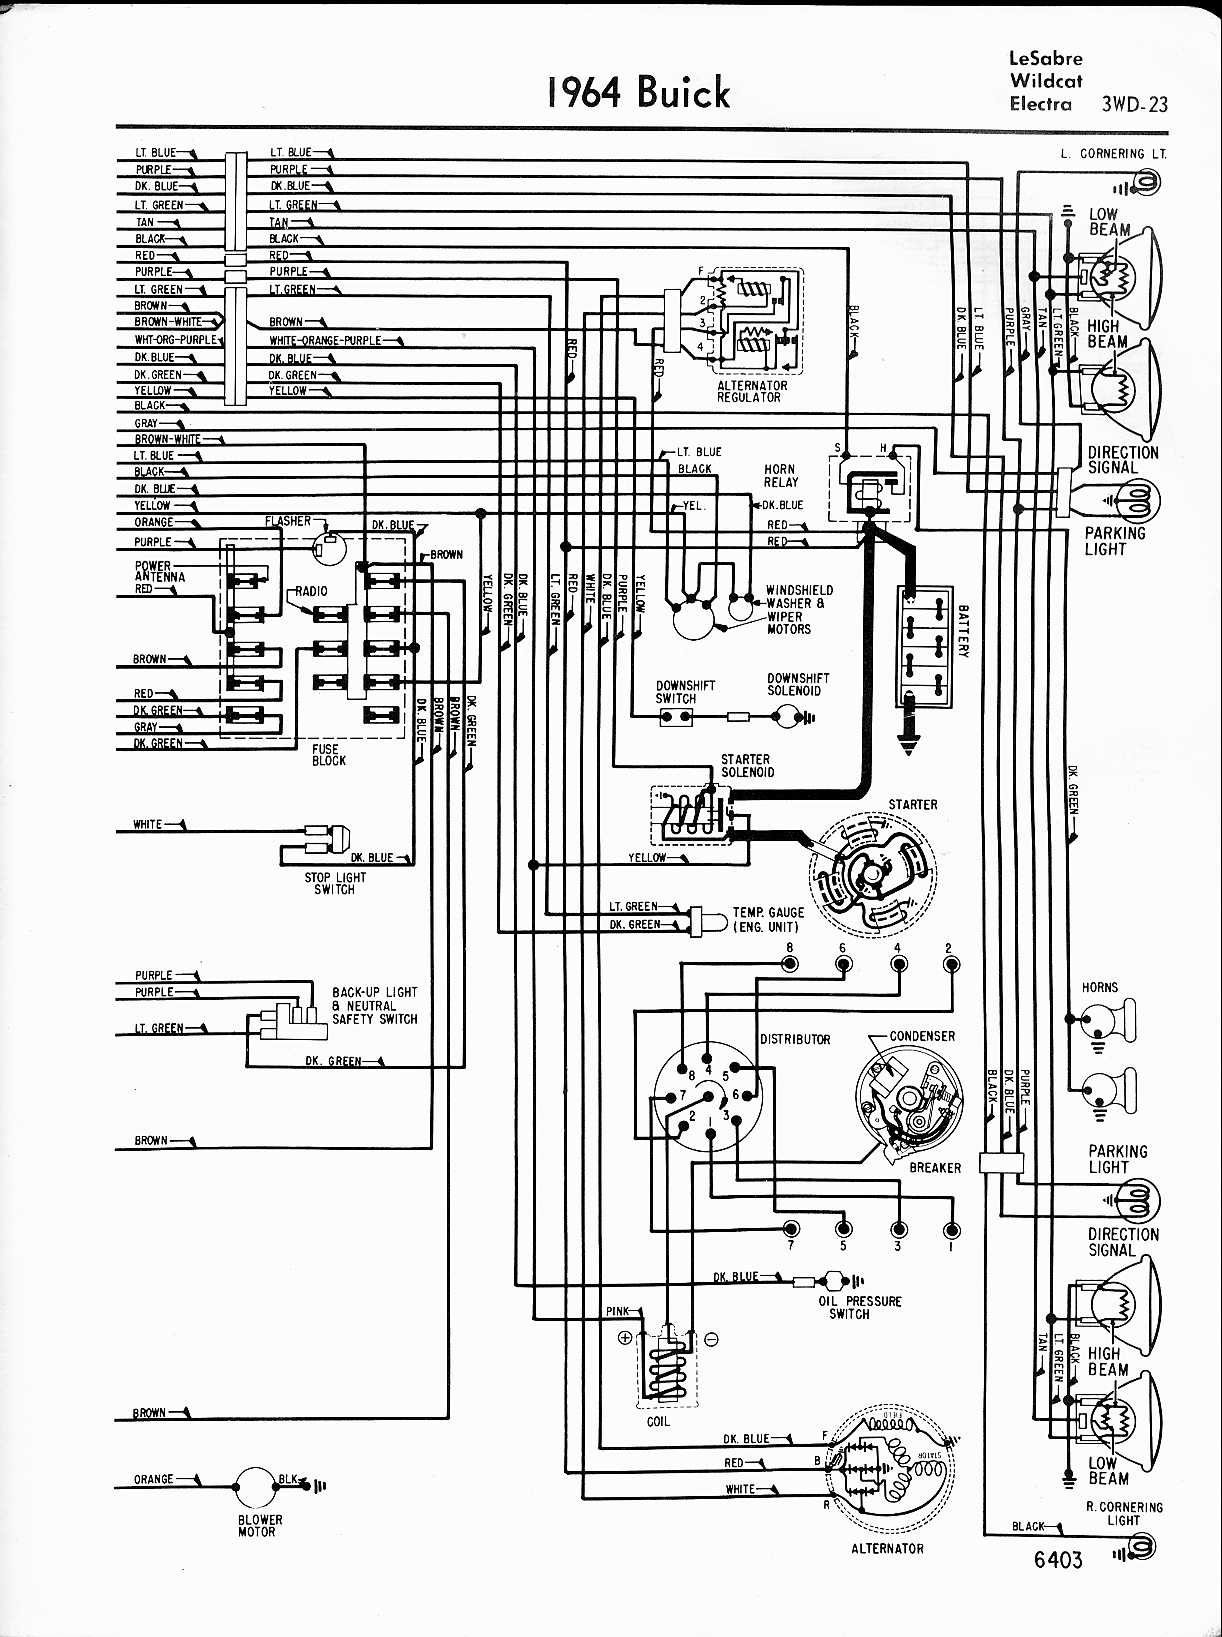 1998 Buick Lesabre Wiring Diagram Free Download Just Another 1996 Fuse Box 2003 Schematic Simple Site Rh 7 8 5 Ohnevergnuegen De 1989